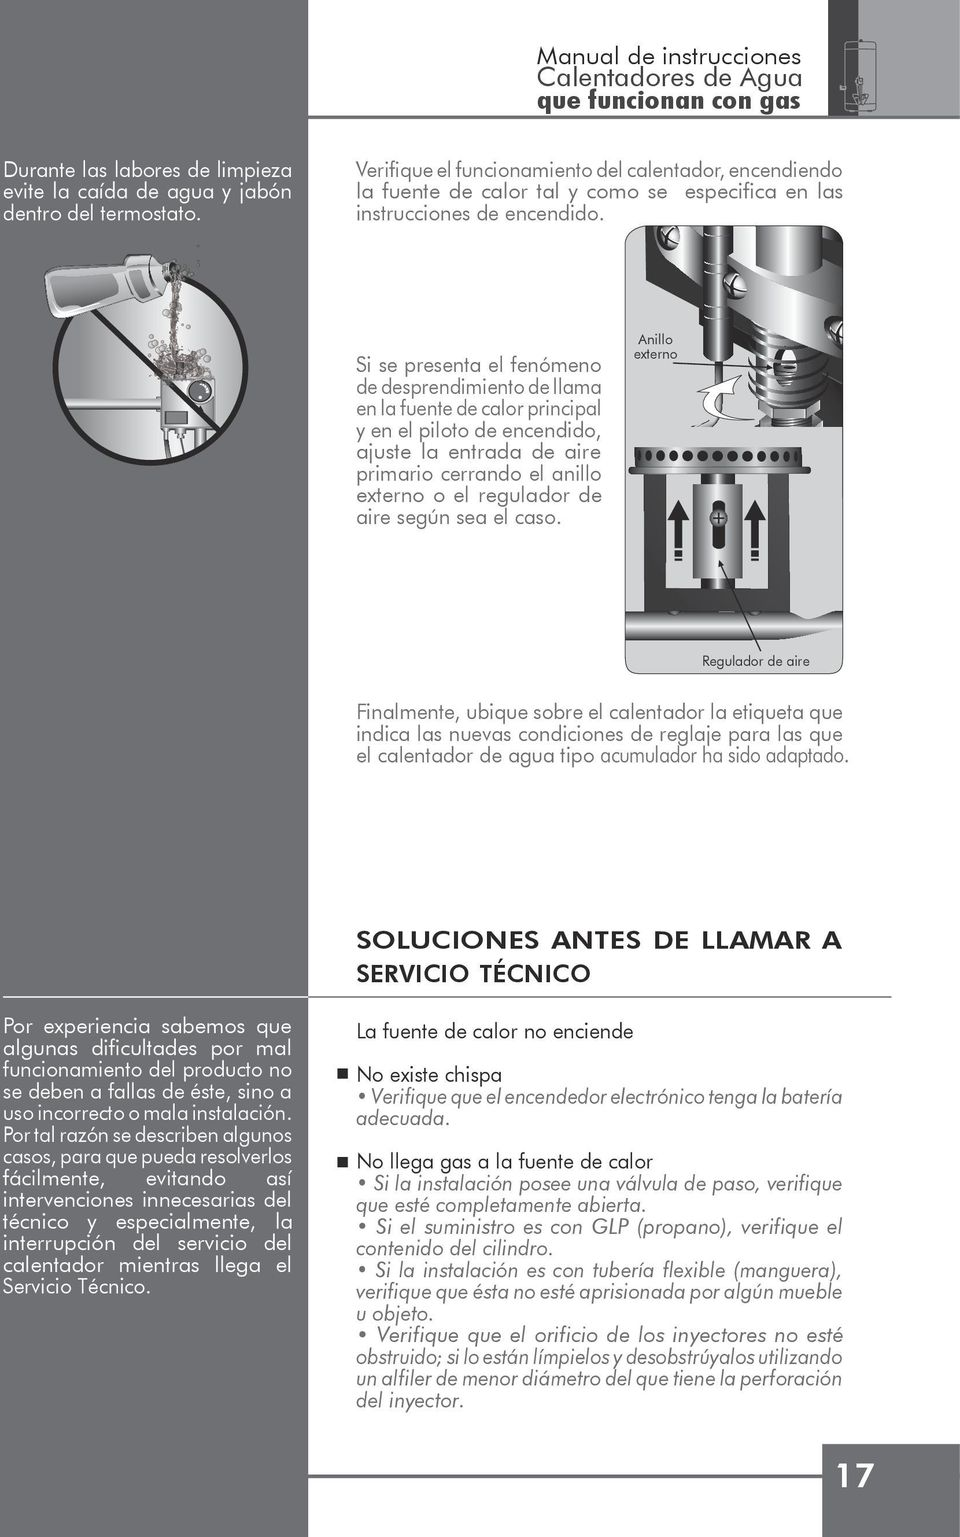 Manual de instrucciones pdf for Manual de fabricacion de muebles de melamina en pdf